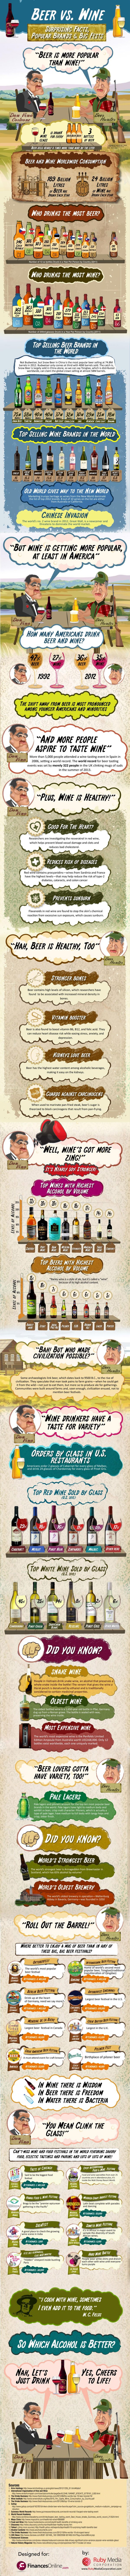 Facts and figures comparing popular wines and beers such as Brahma Beer and Italian Wine as well as the most well-known festivals, like the Mondial De La Biere Beer Festival.